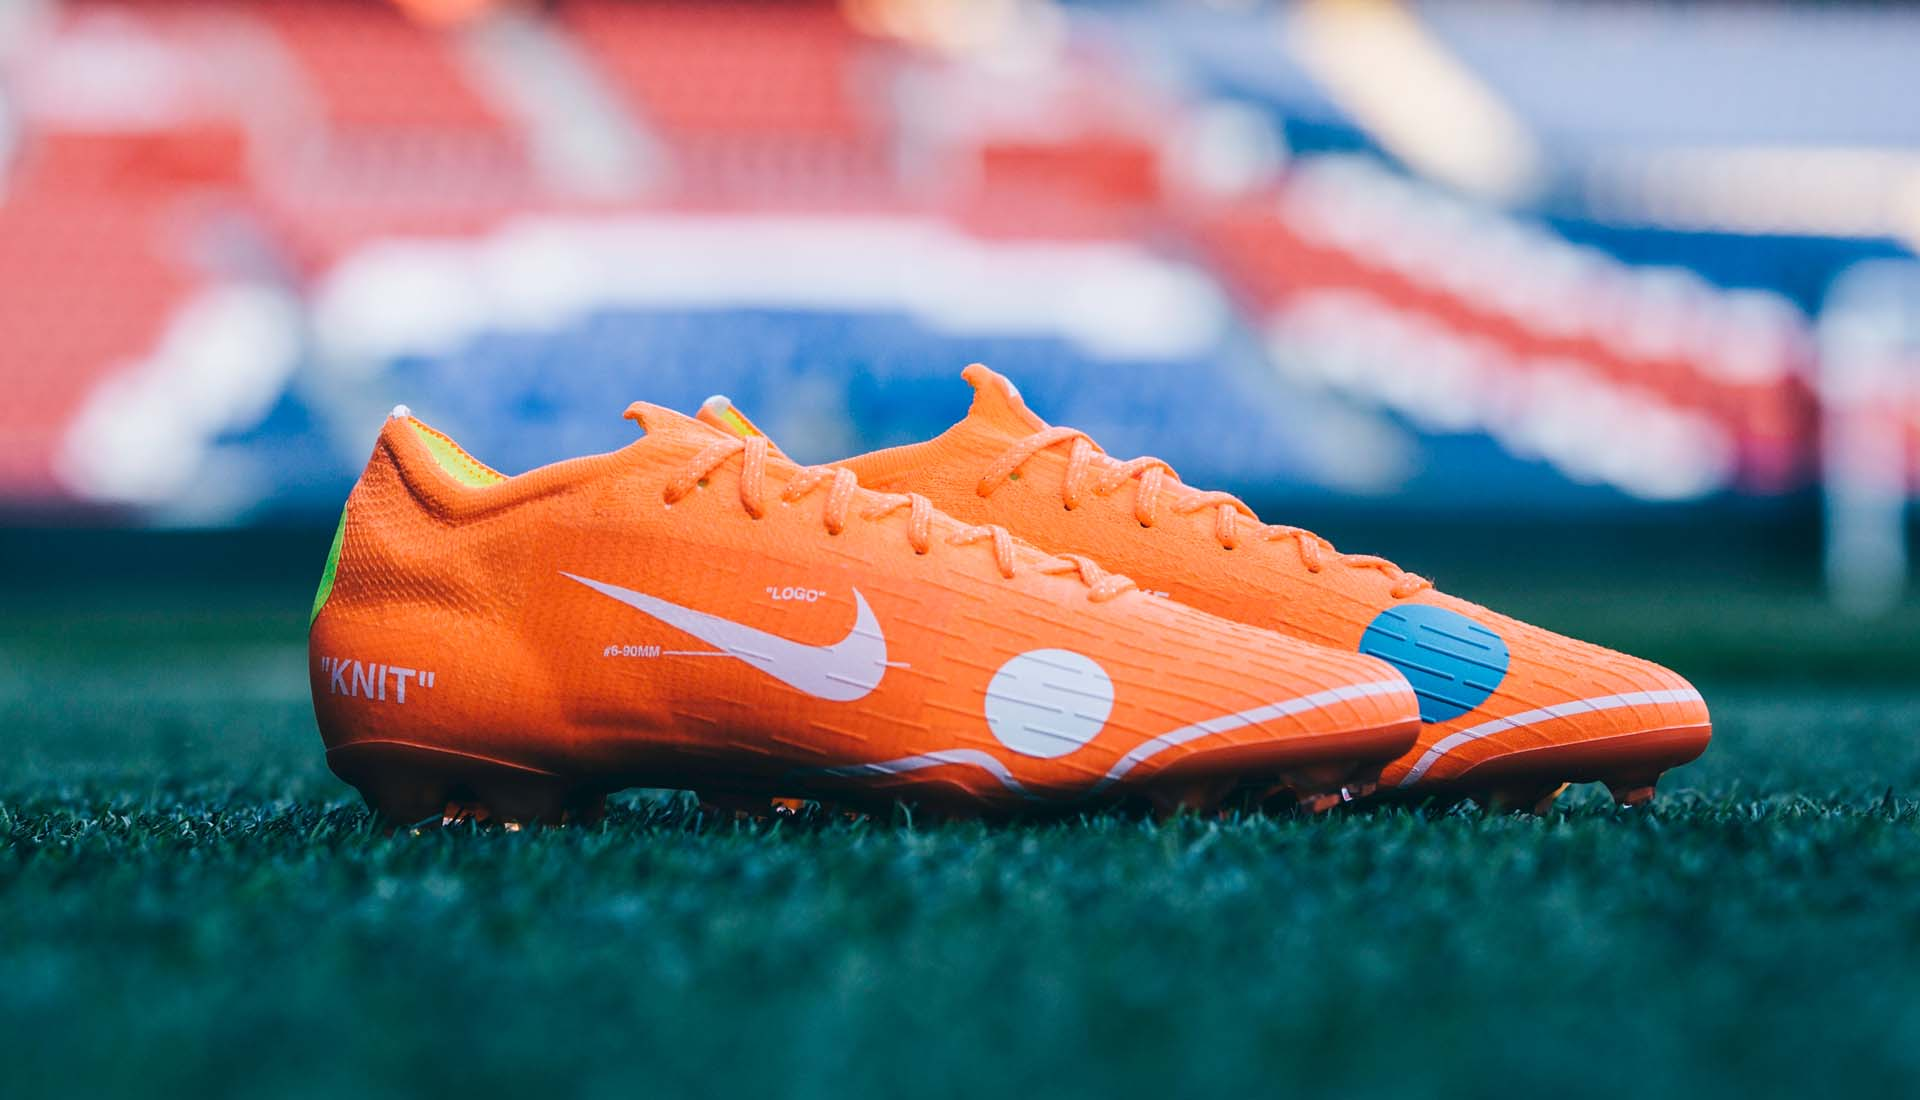 brand new 9ca41 362a5 Kylian Mbappé Launches The Nike x Virgil Abloh Mercurial 360 ...